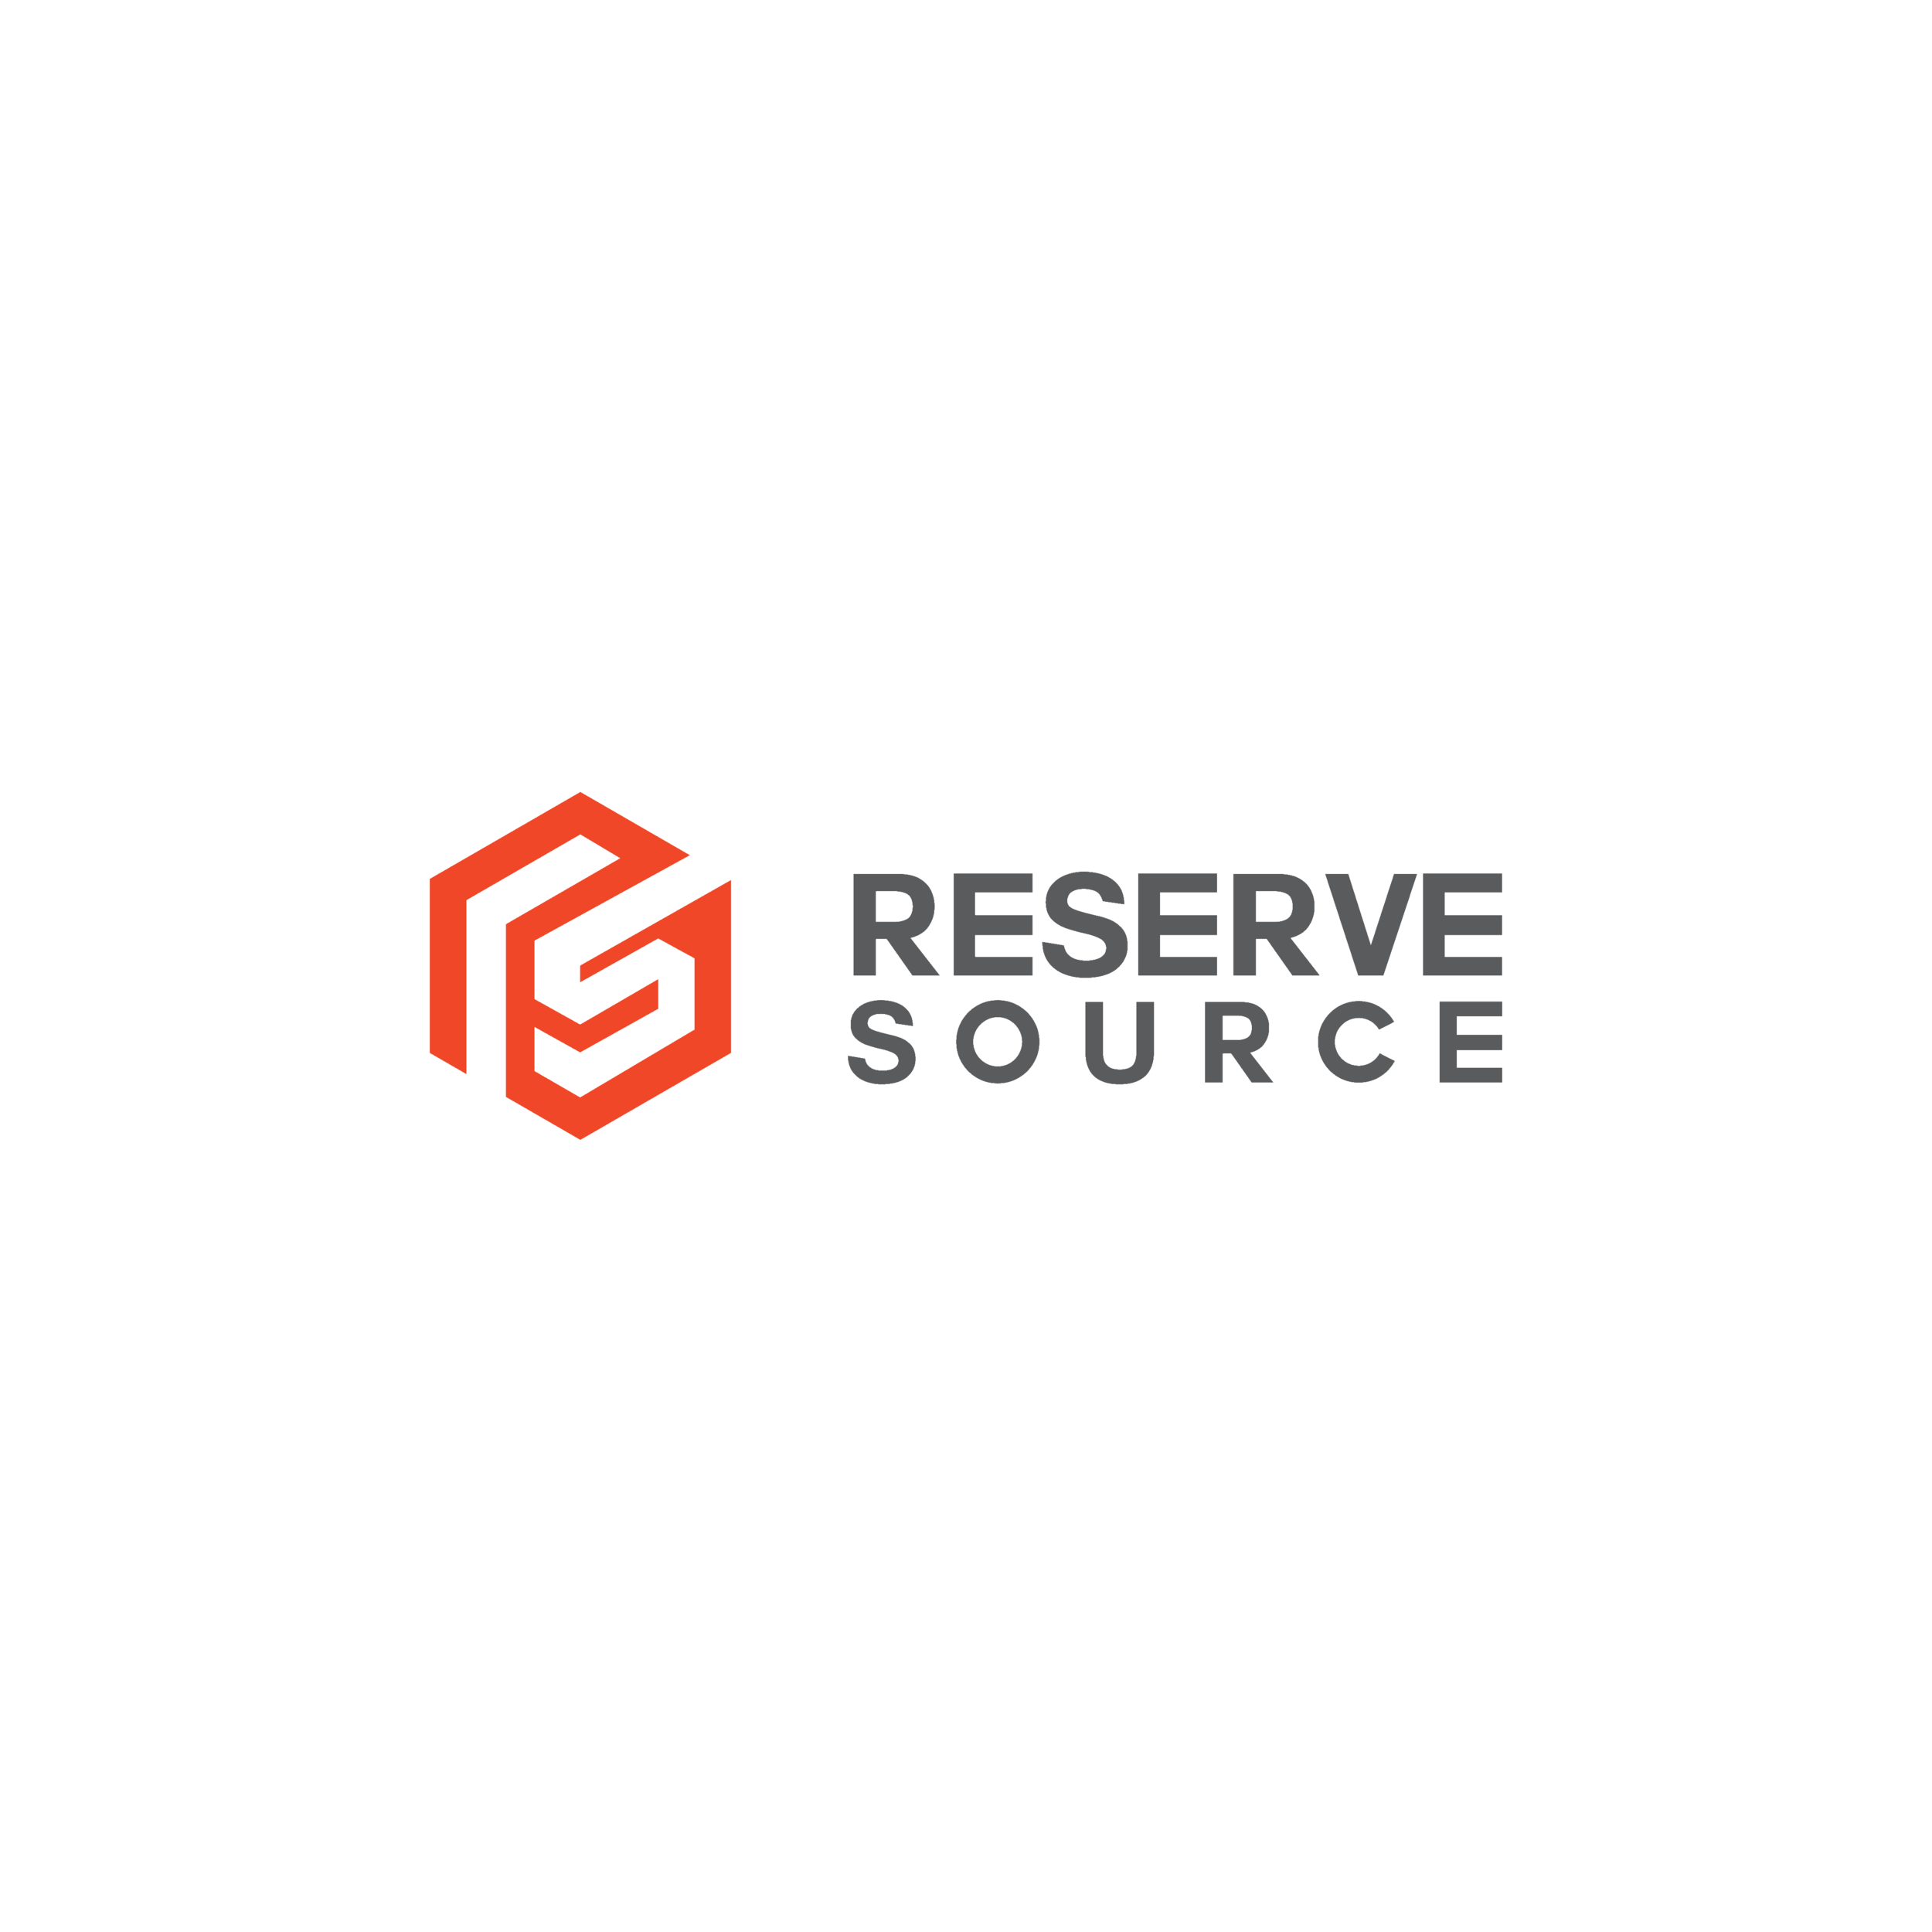 ReserveSource_White.png